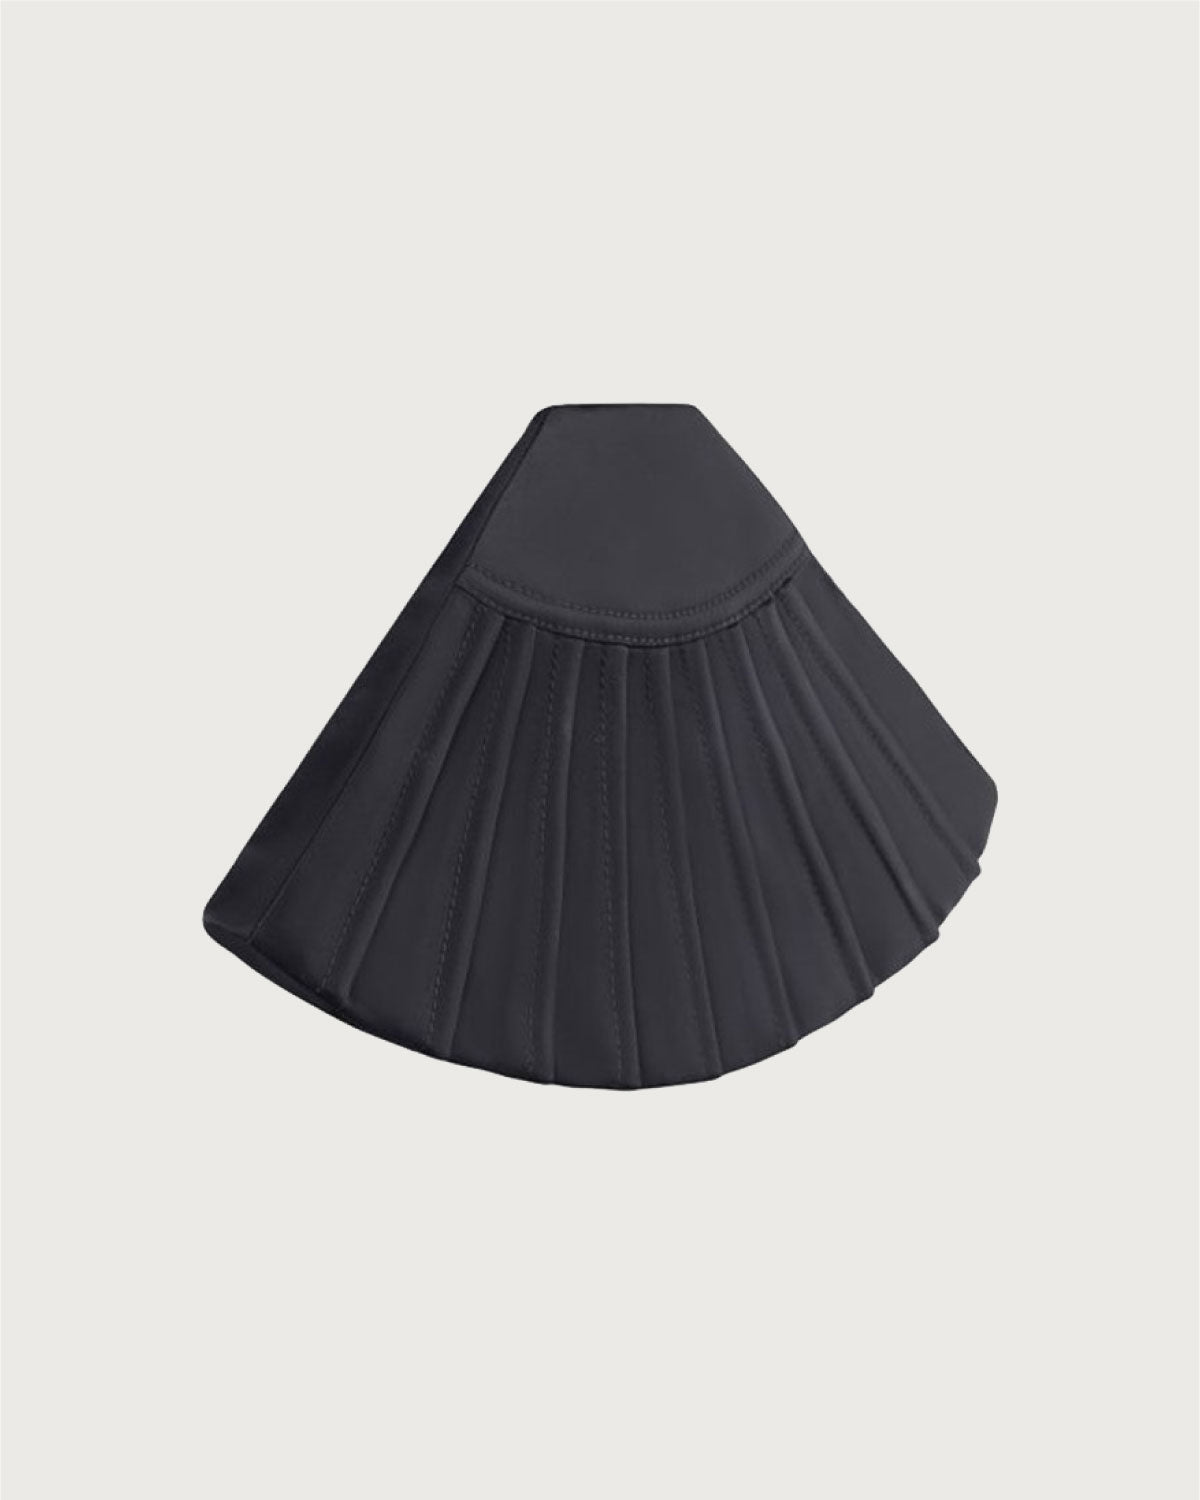 Mini Fan Clutch Black